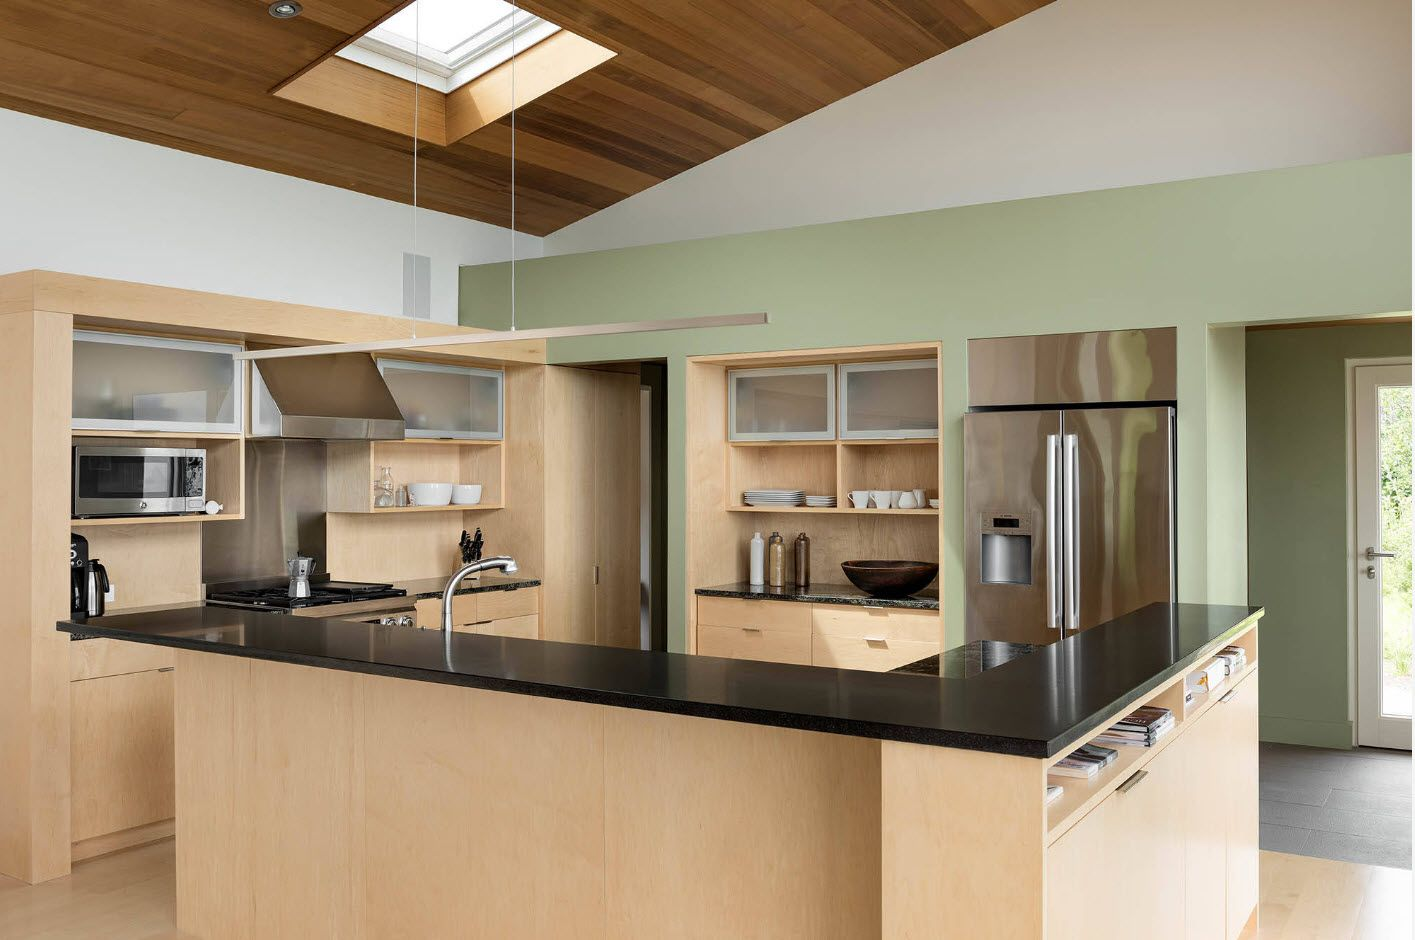 40 Square Feet Kitchen Modern Design Ideas & Layout Types. Ceiling slant with wooden texture and suspended white lamps